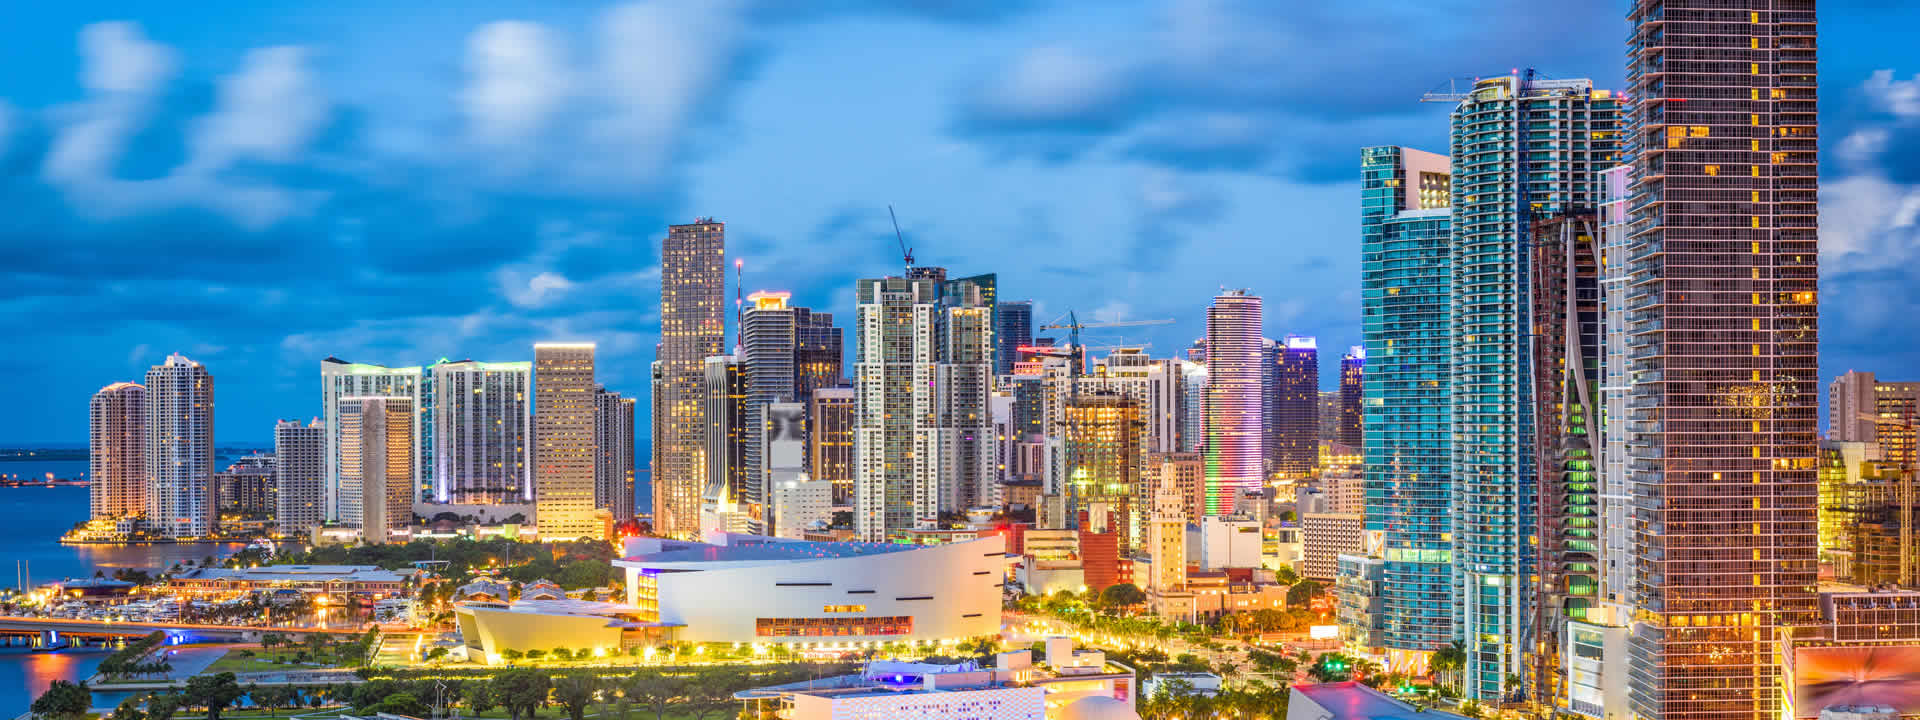 Miami Private Jet Charter Skyline view